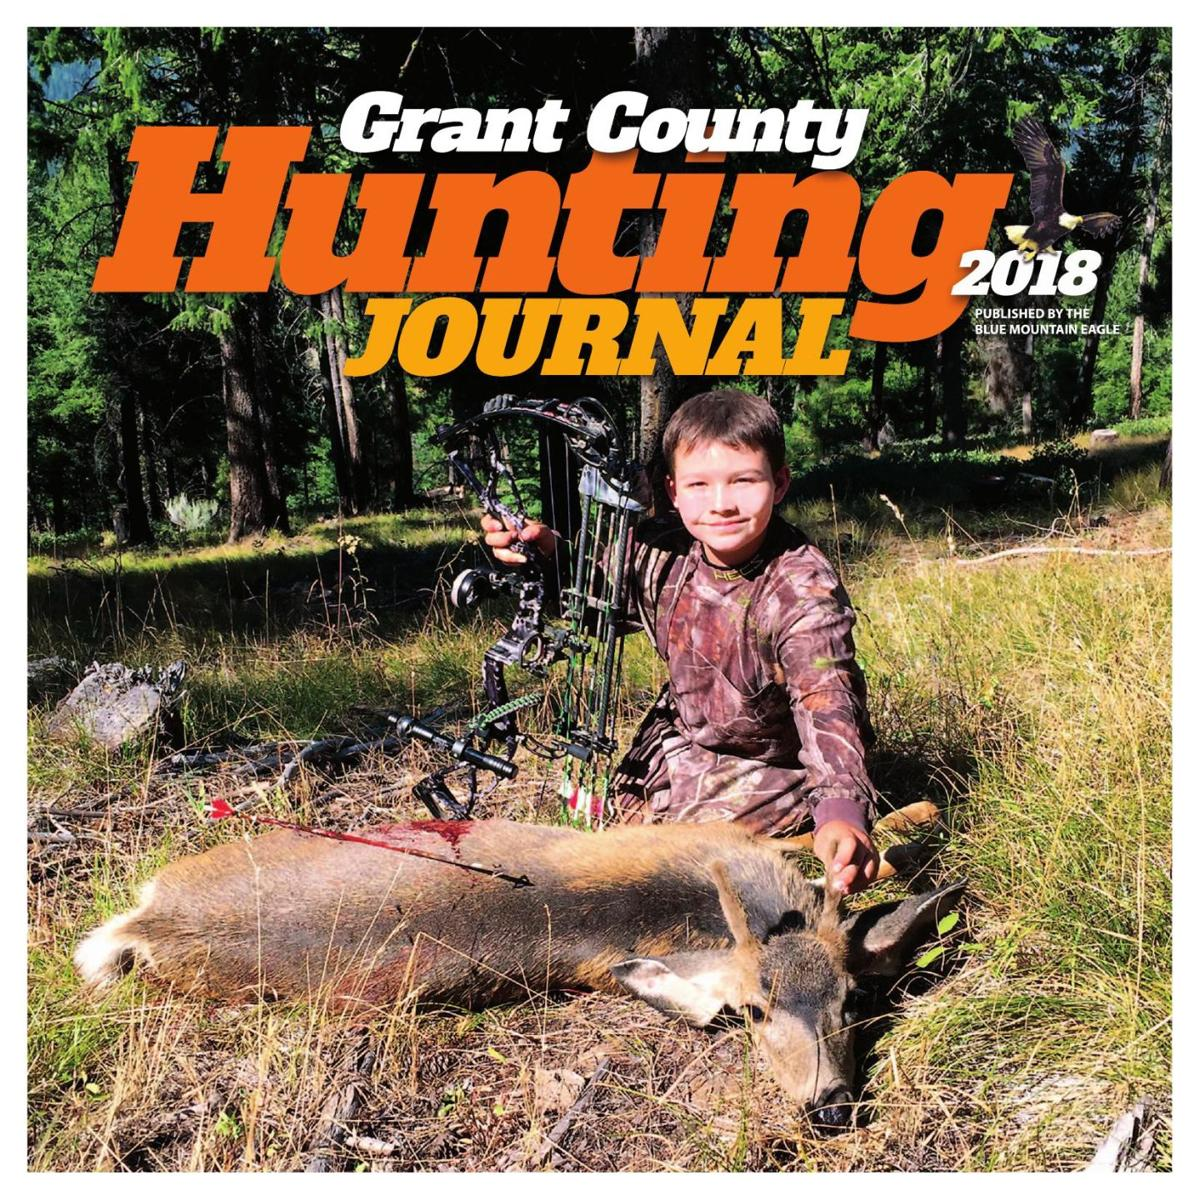 Grant County Hunting Journal 2018